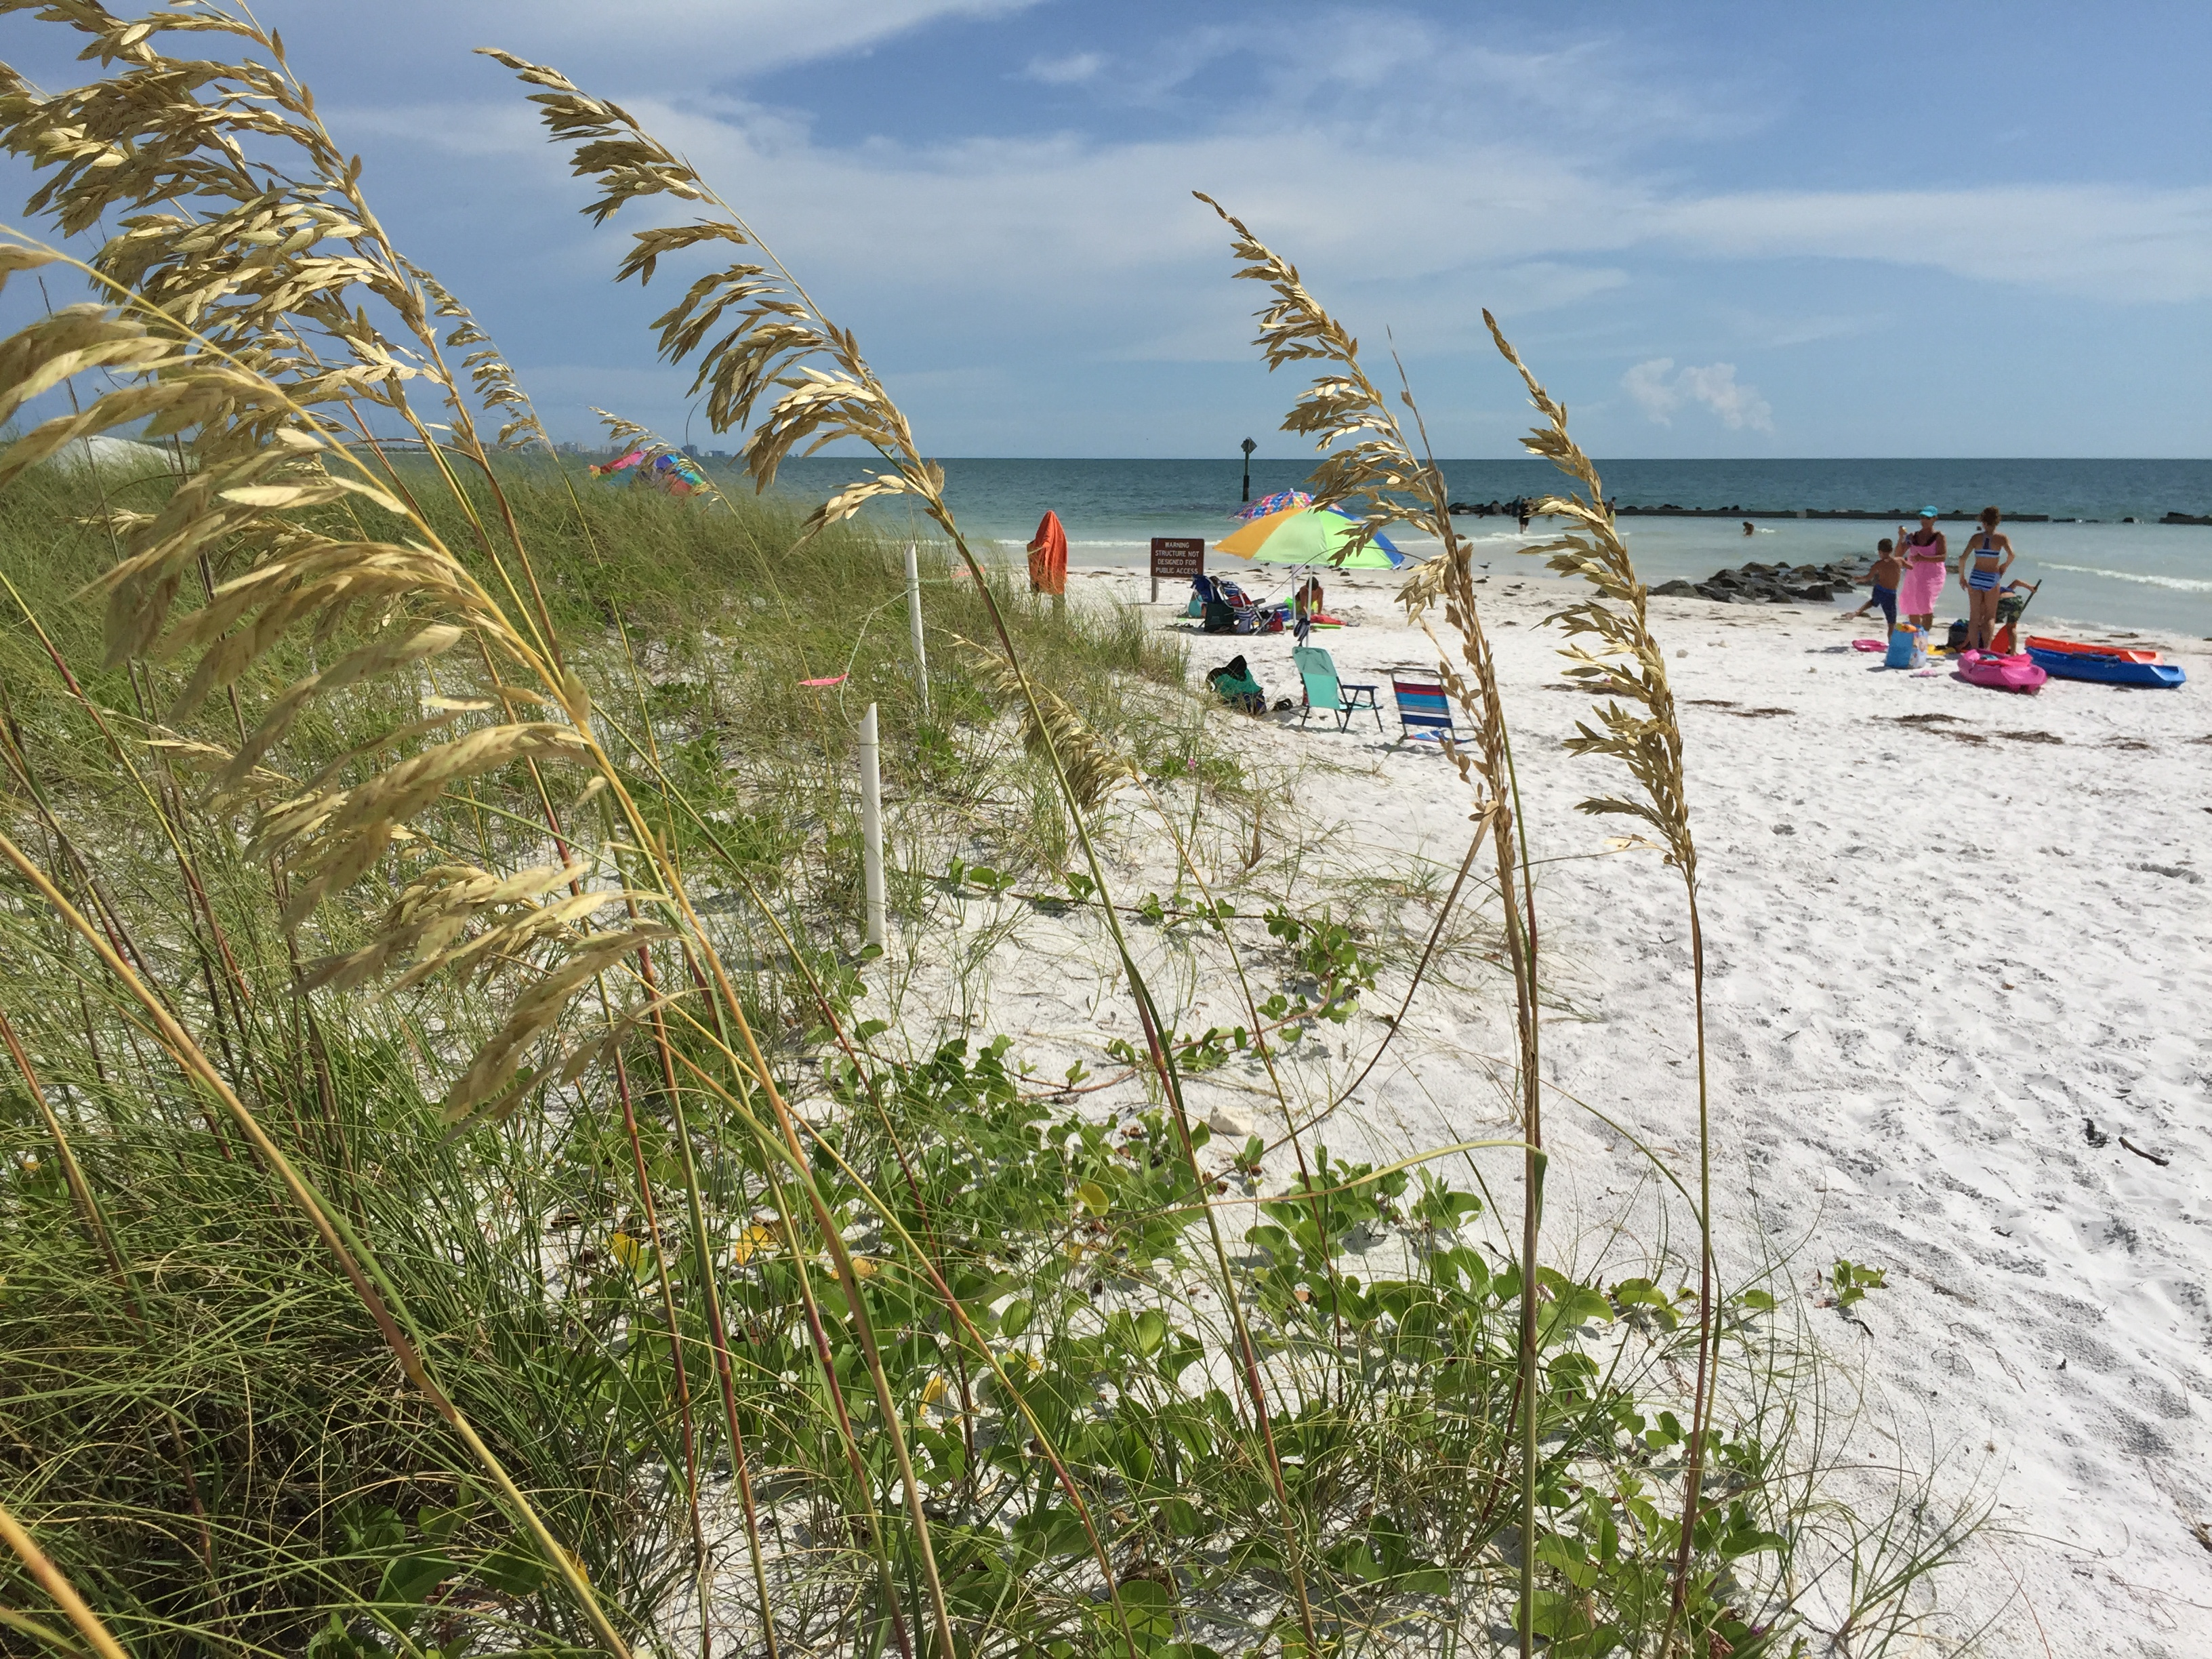 Nude Beach Videos topless event planned at honeymoon island state park